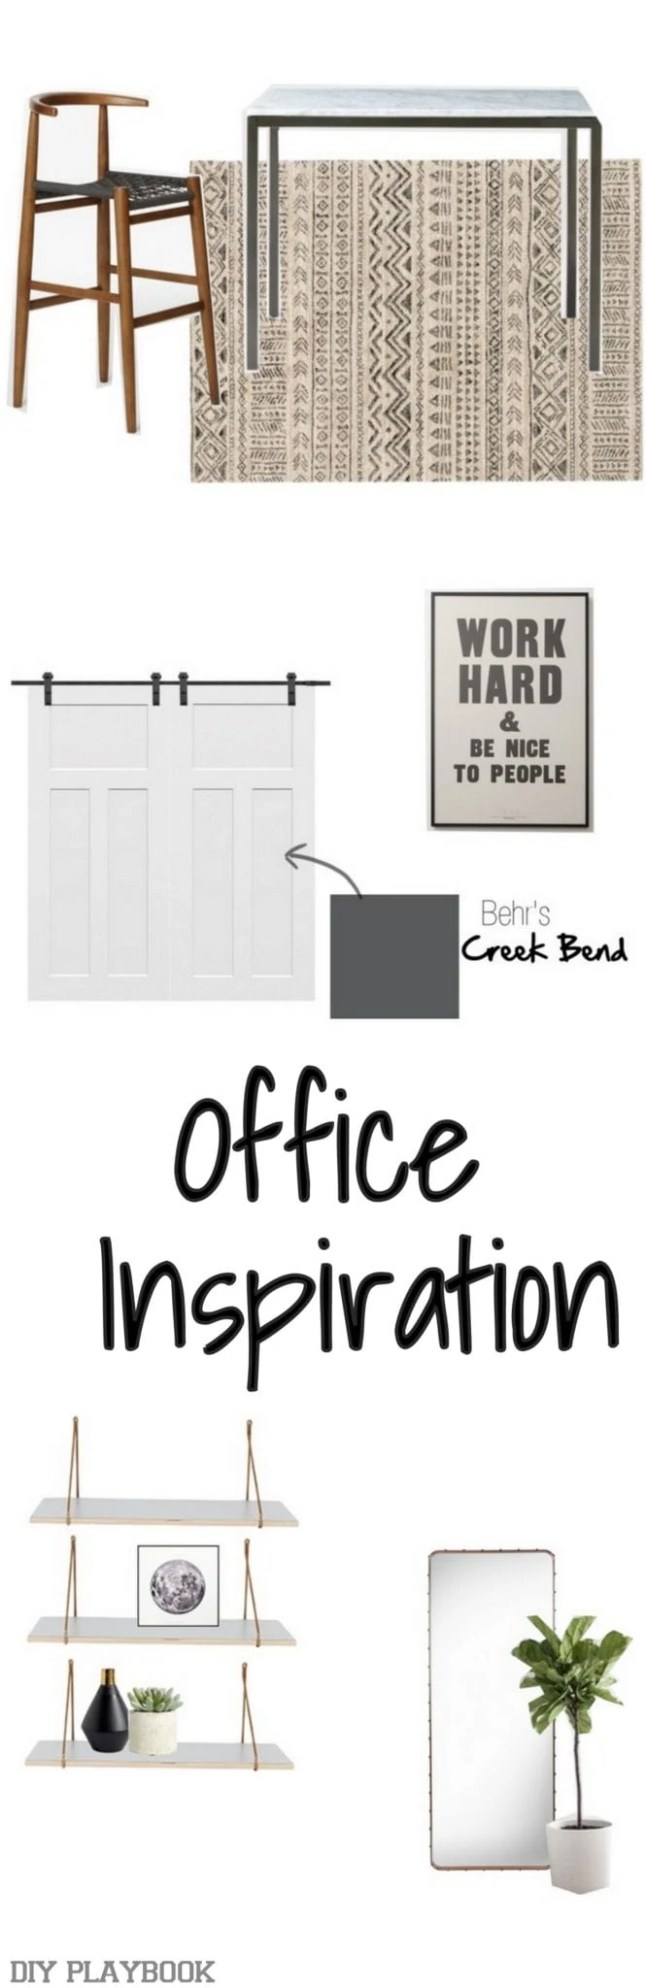 office_inspiration-002